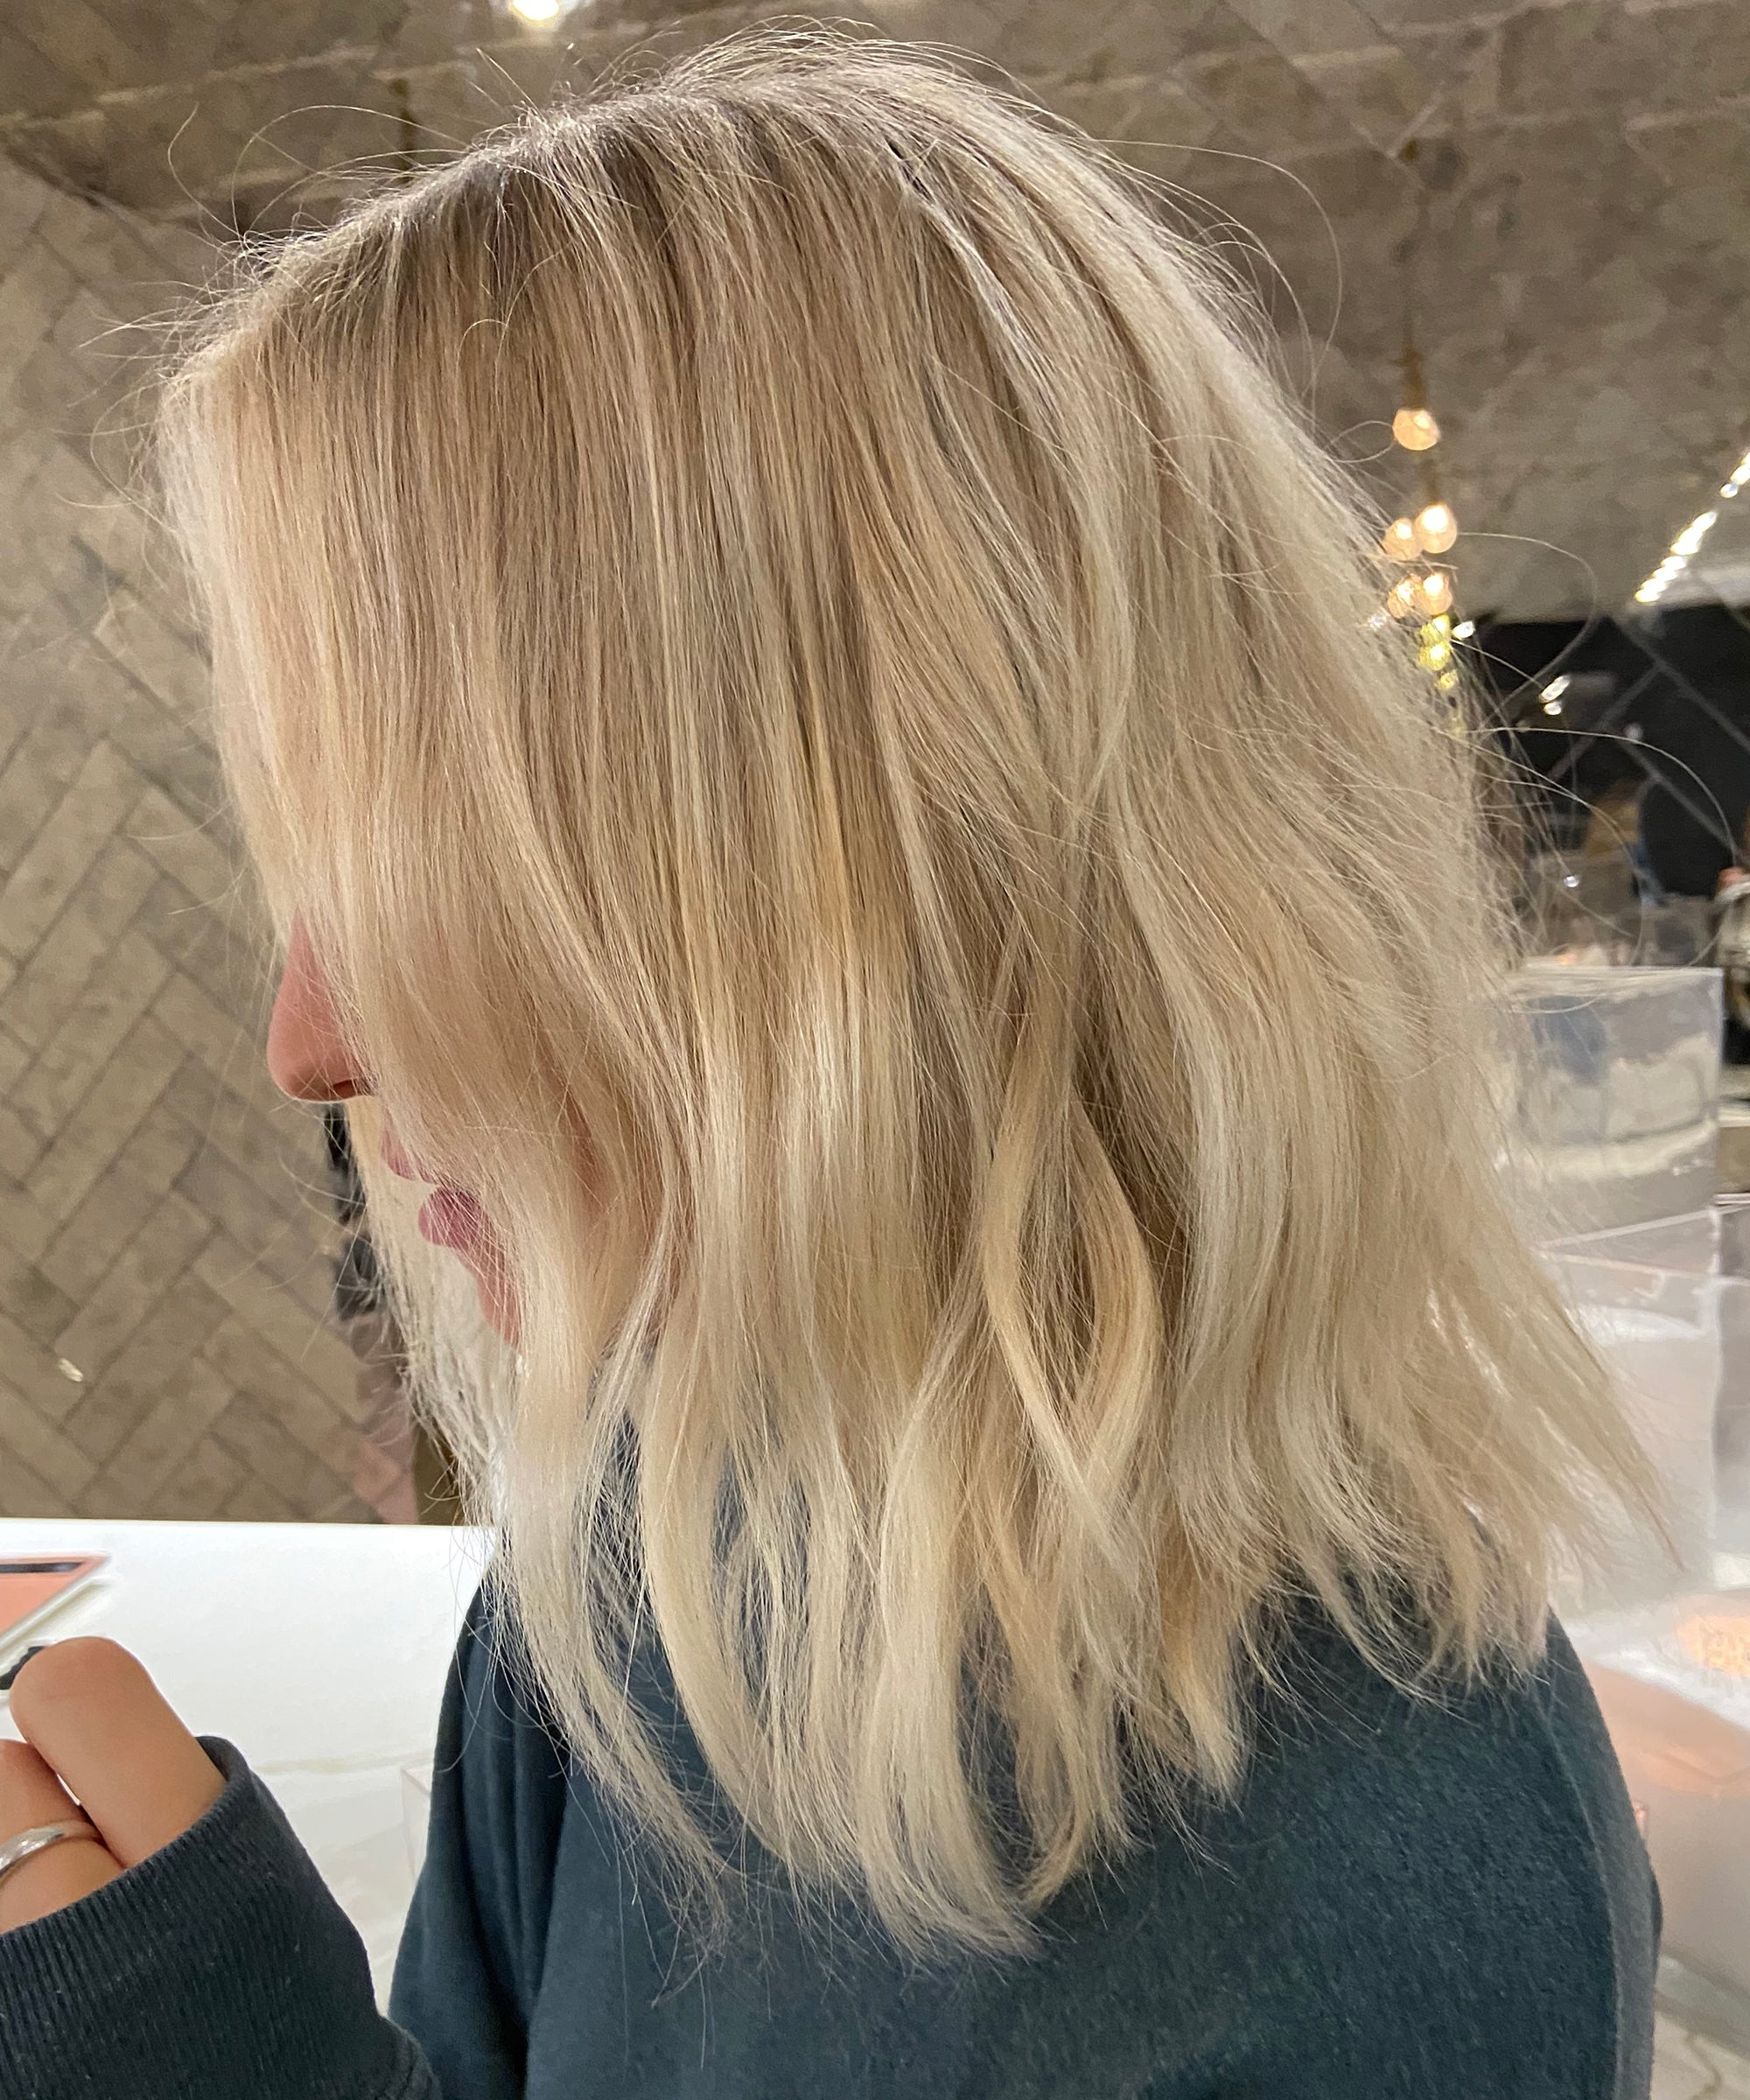 Stone Blonde Hair Is The New Platinum Color Trend 2020